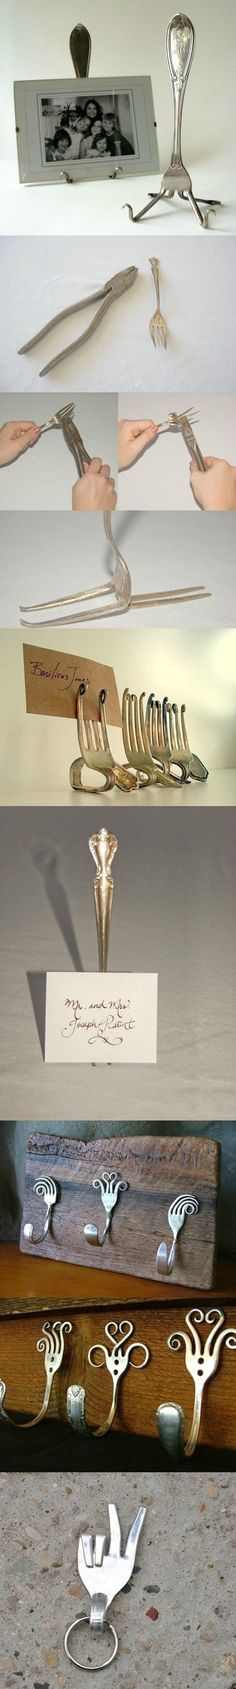 recycle old forks - Imgur